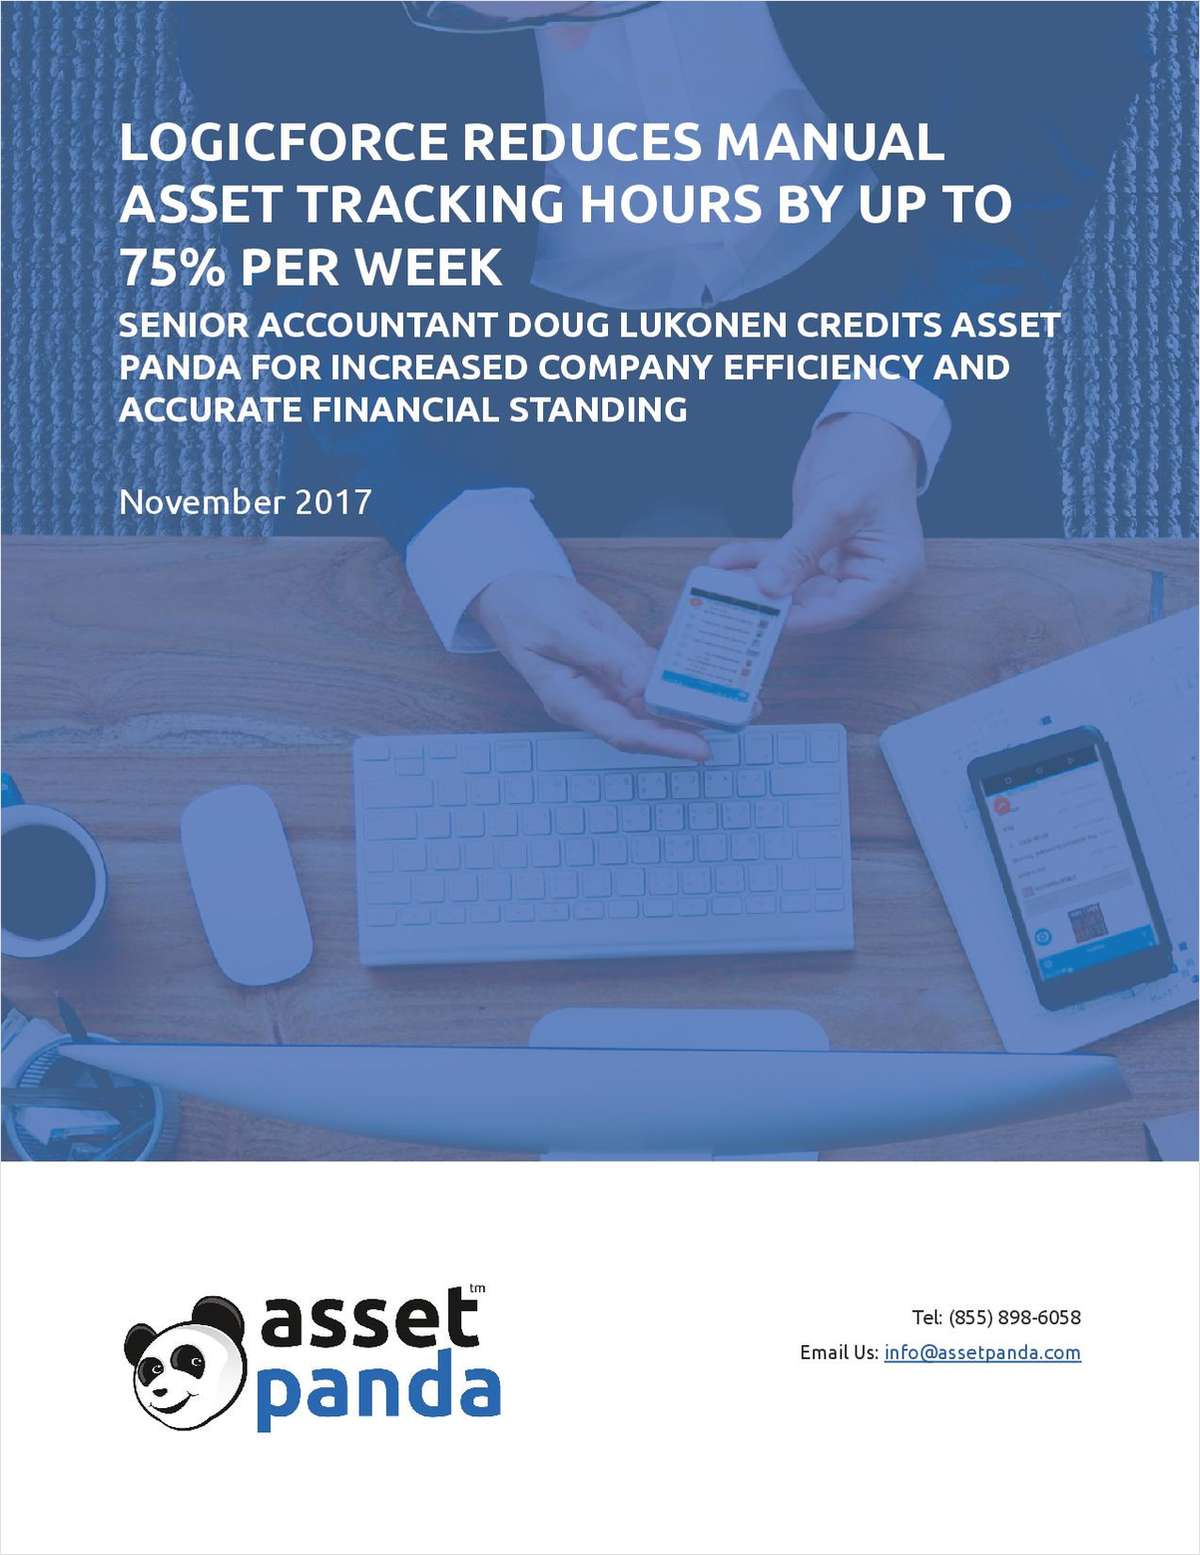 LogicForce Reduces Manual Asset Tracking Hours by Up to 75% Per Week